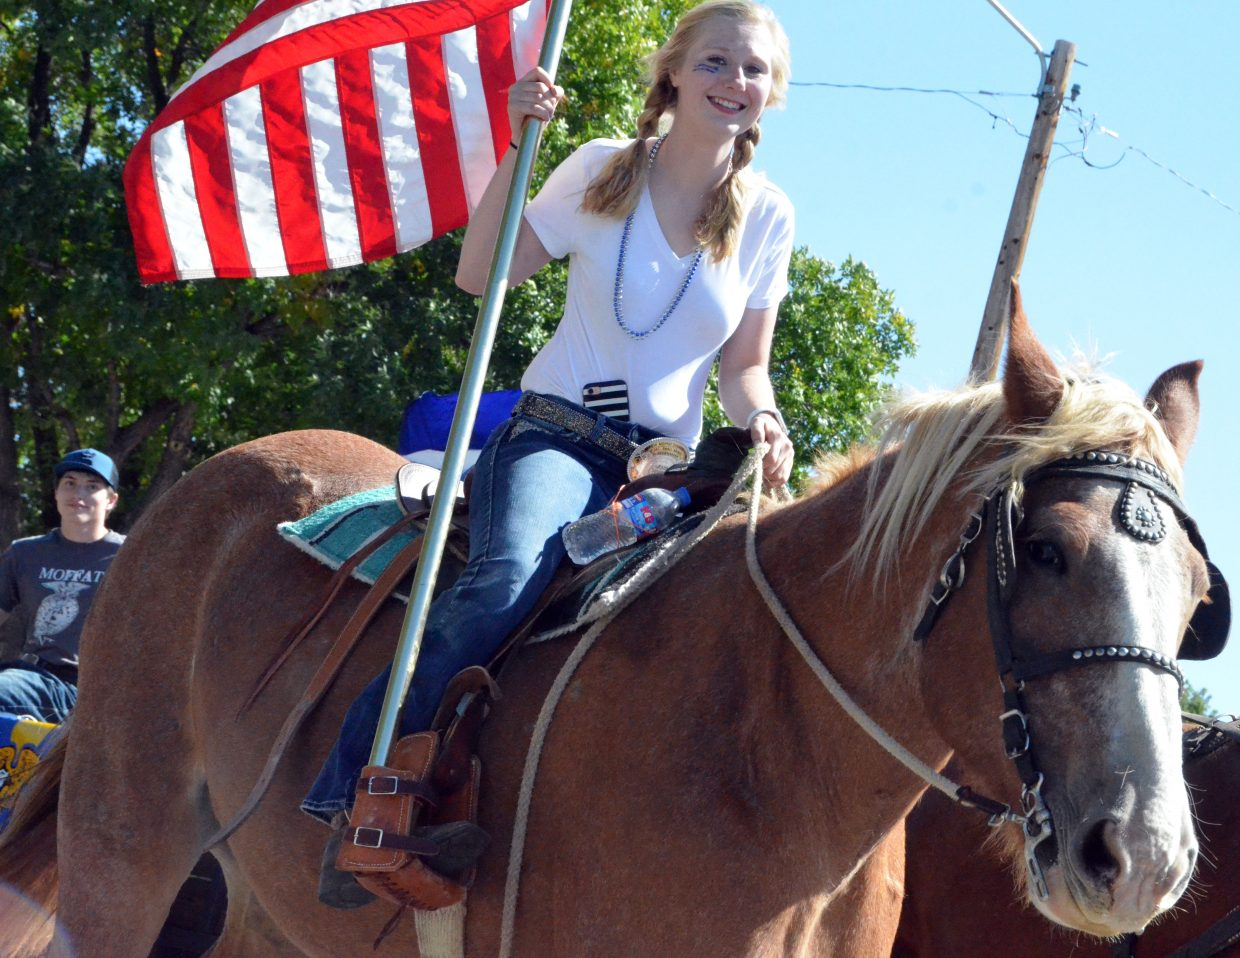 Moffat County High School's Brianna Burkett hoists the American flag on horseback during the Homecoming parade in September 2018.